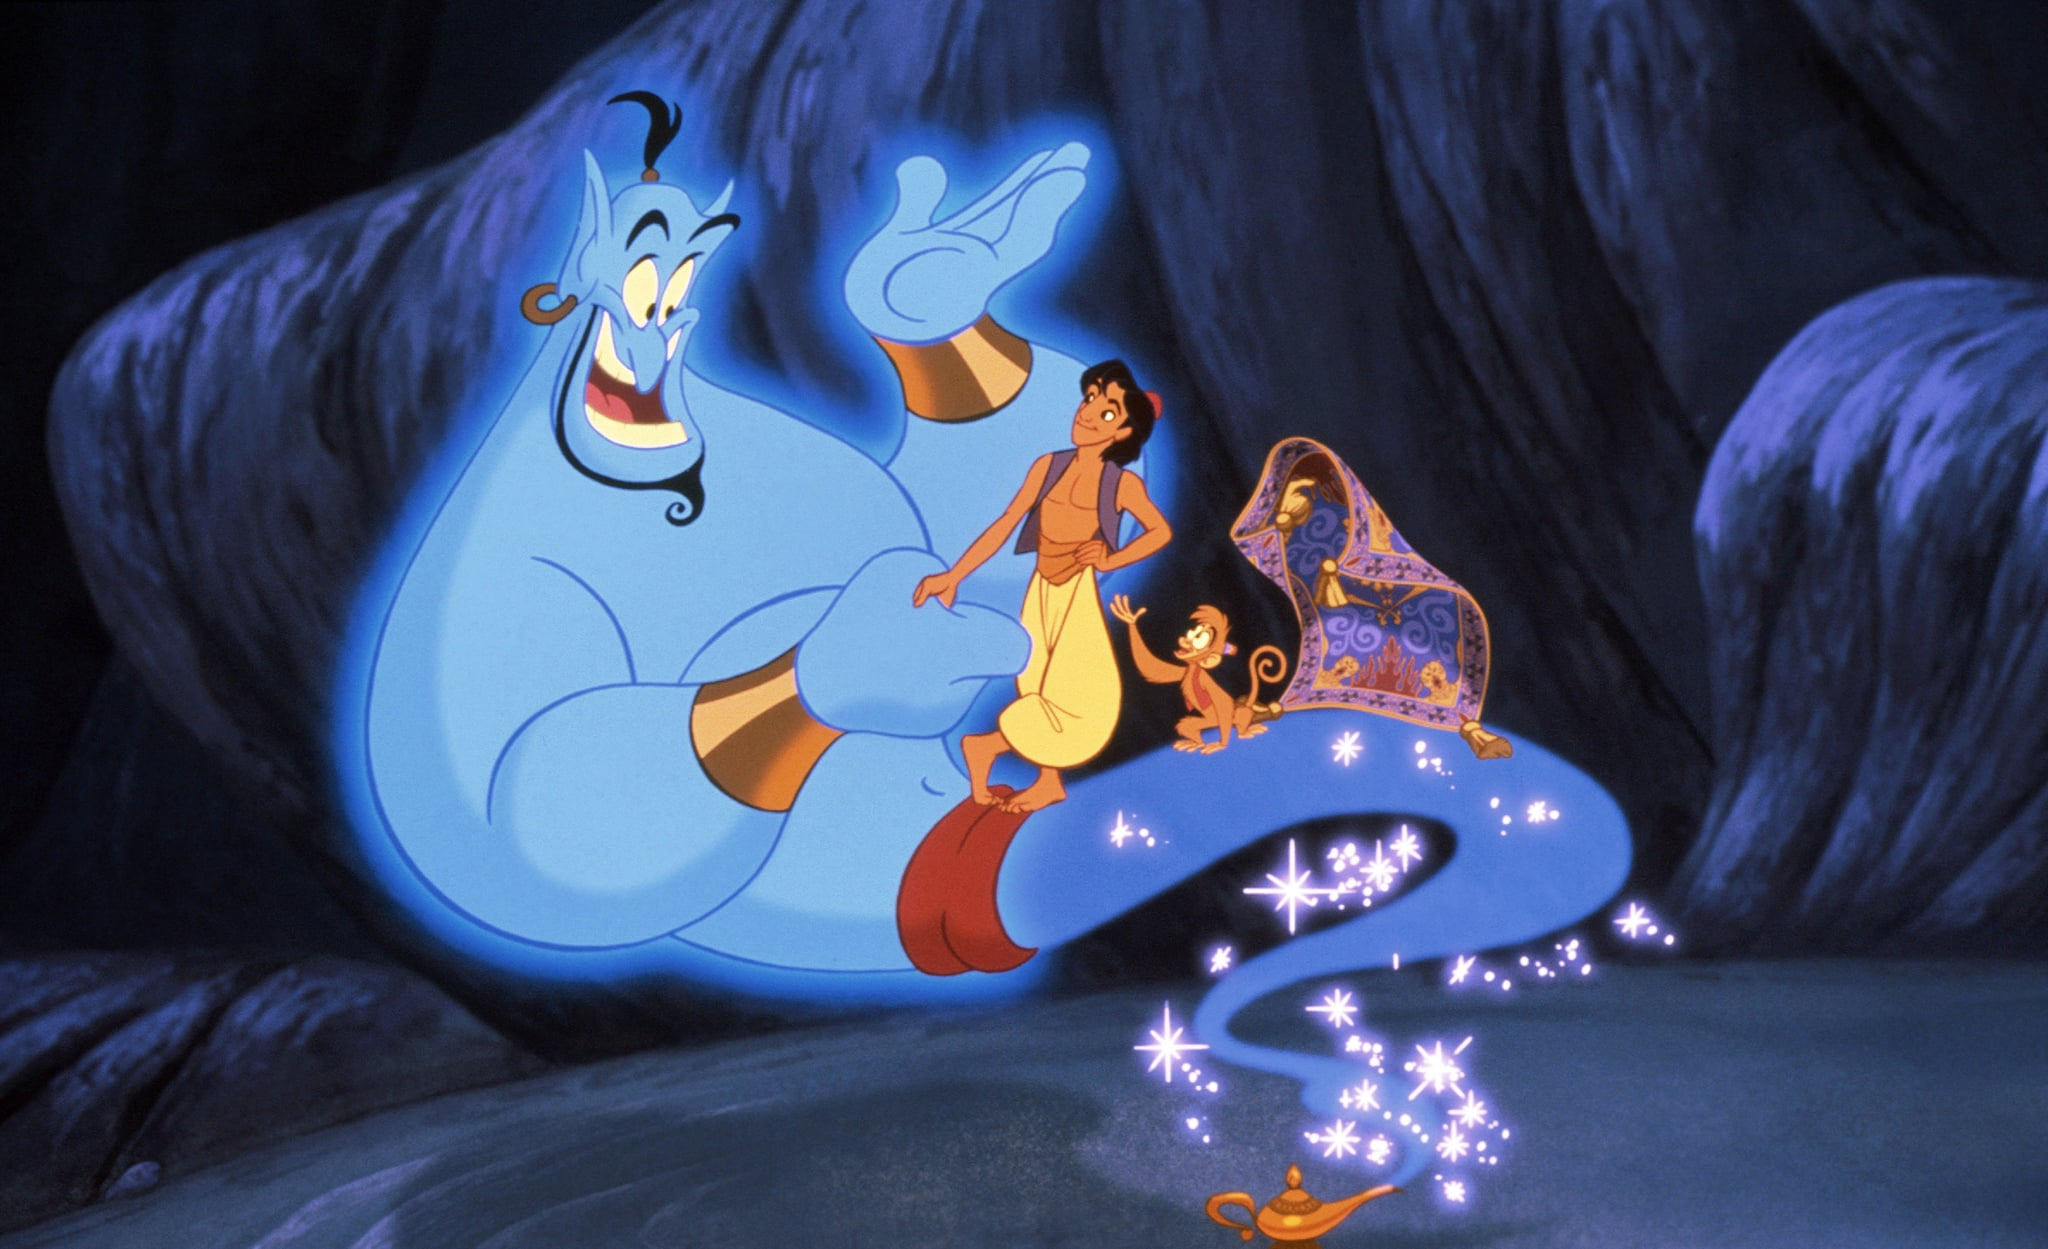 Aladdin Theory About the Genie and the Peddler | POPSUGAR ... for Aladdin All Characters  110zmd